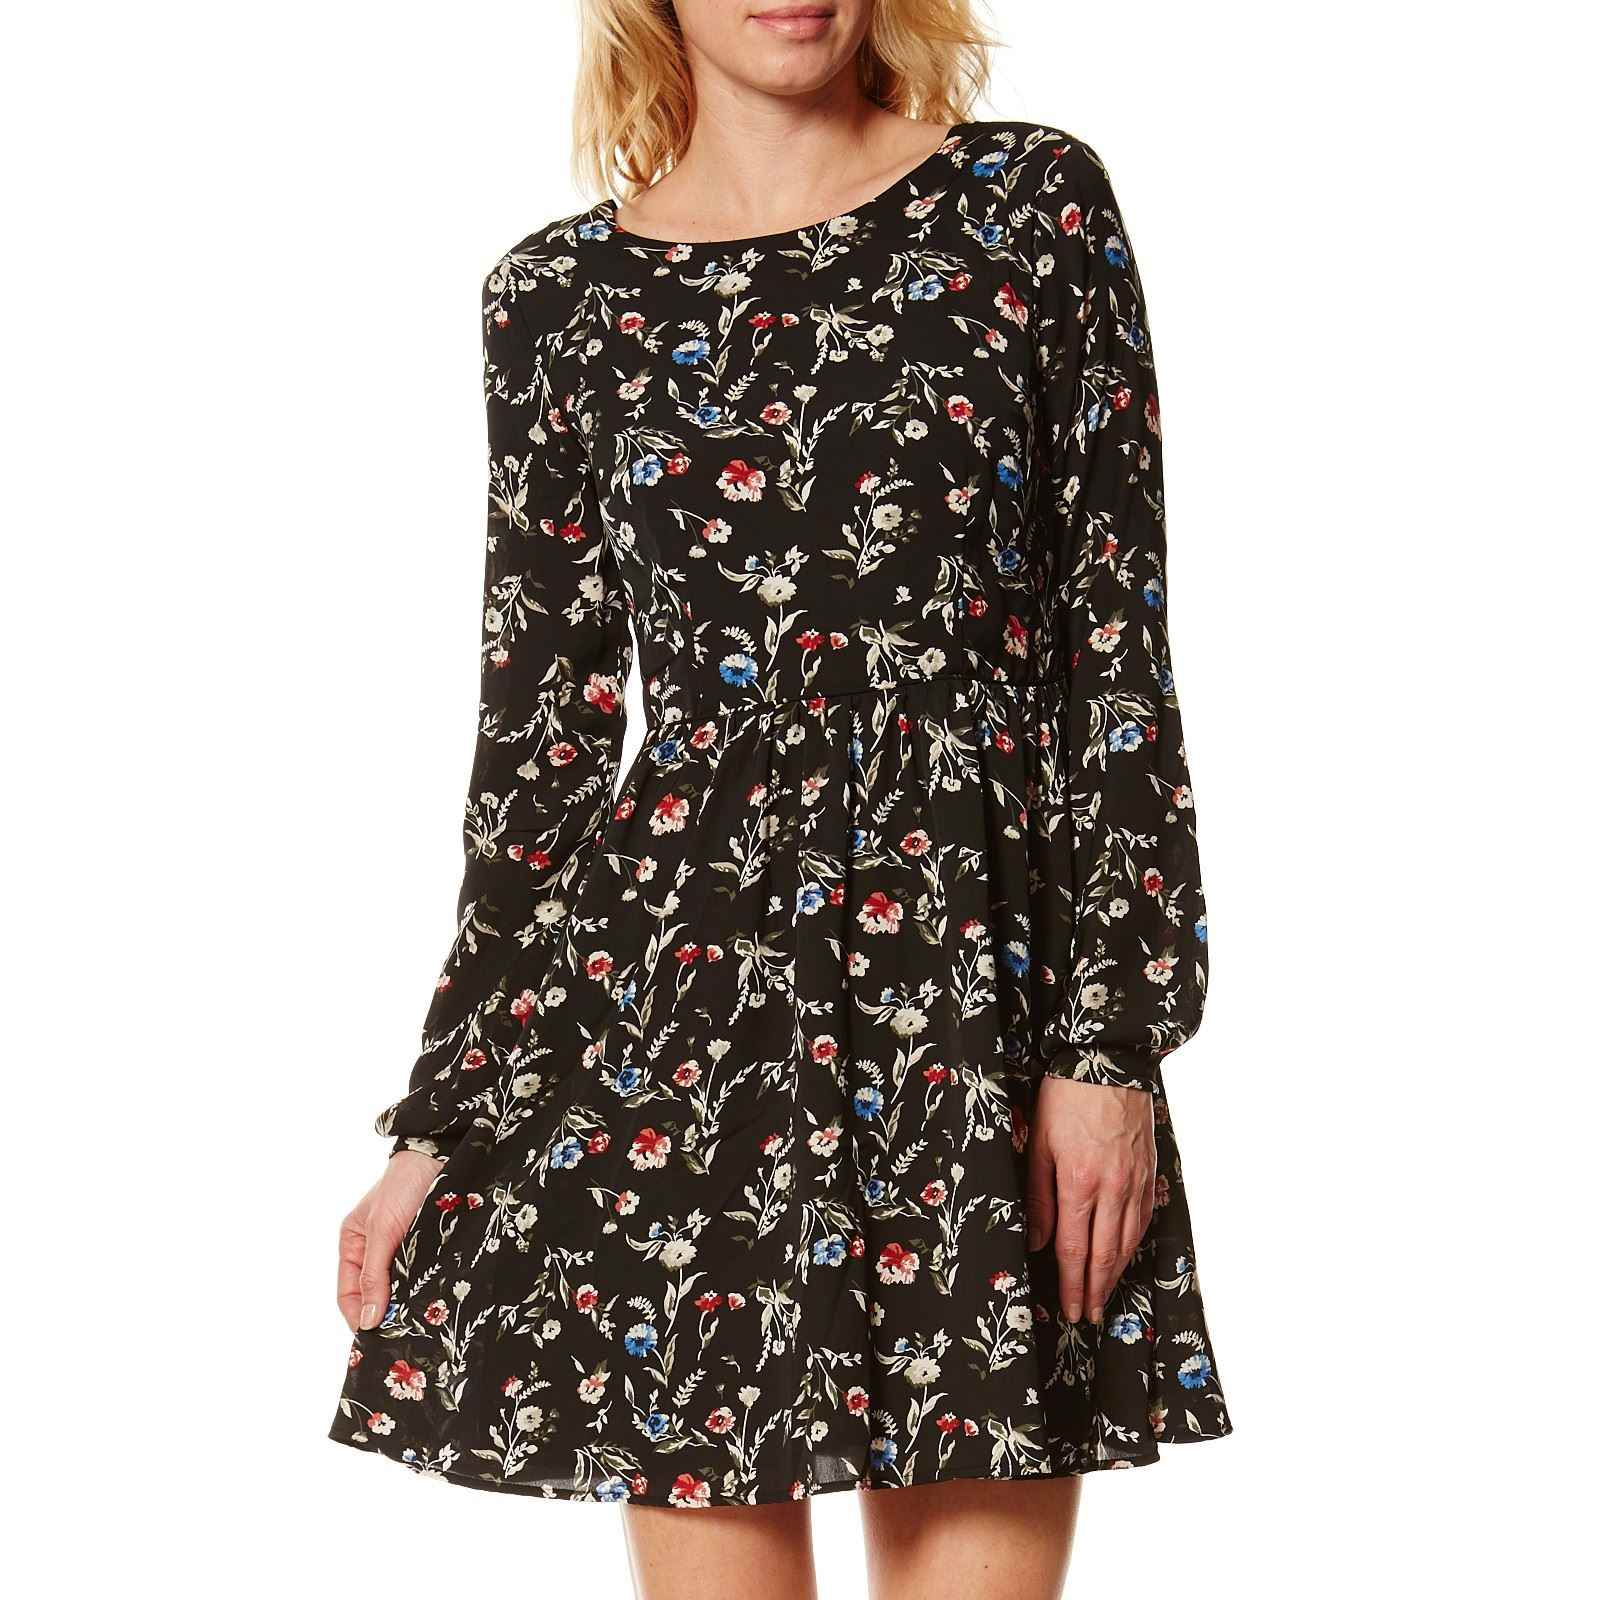 Pepe Jeans London Mabel Kleid Schwarz Brandalley